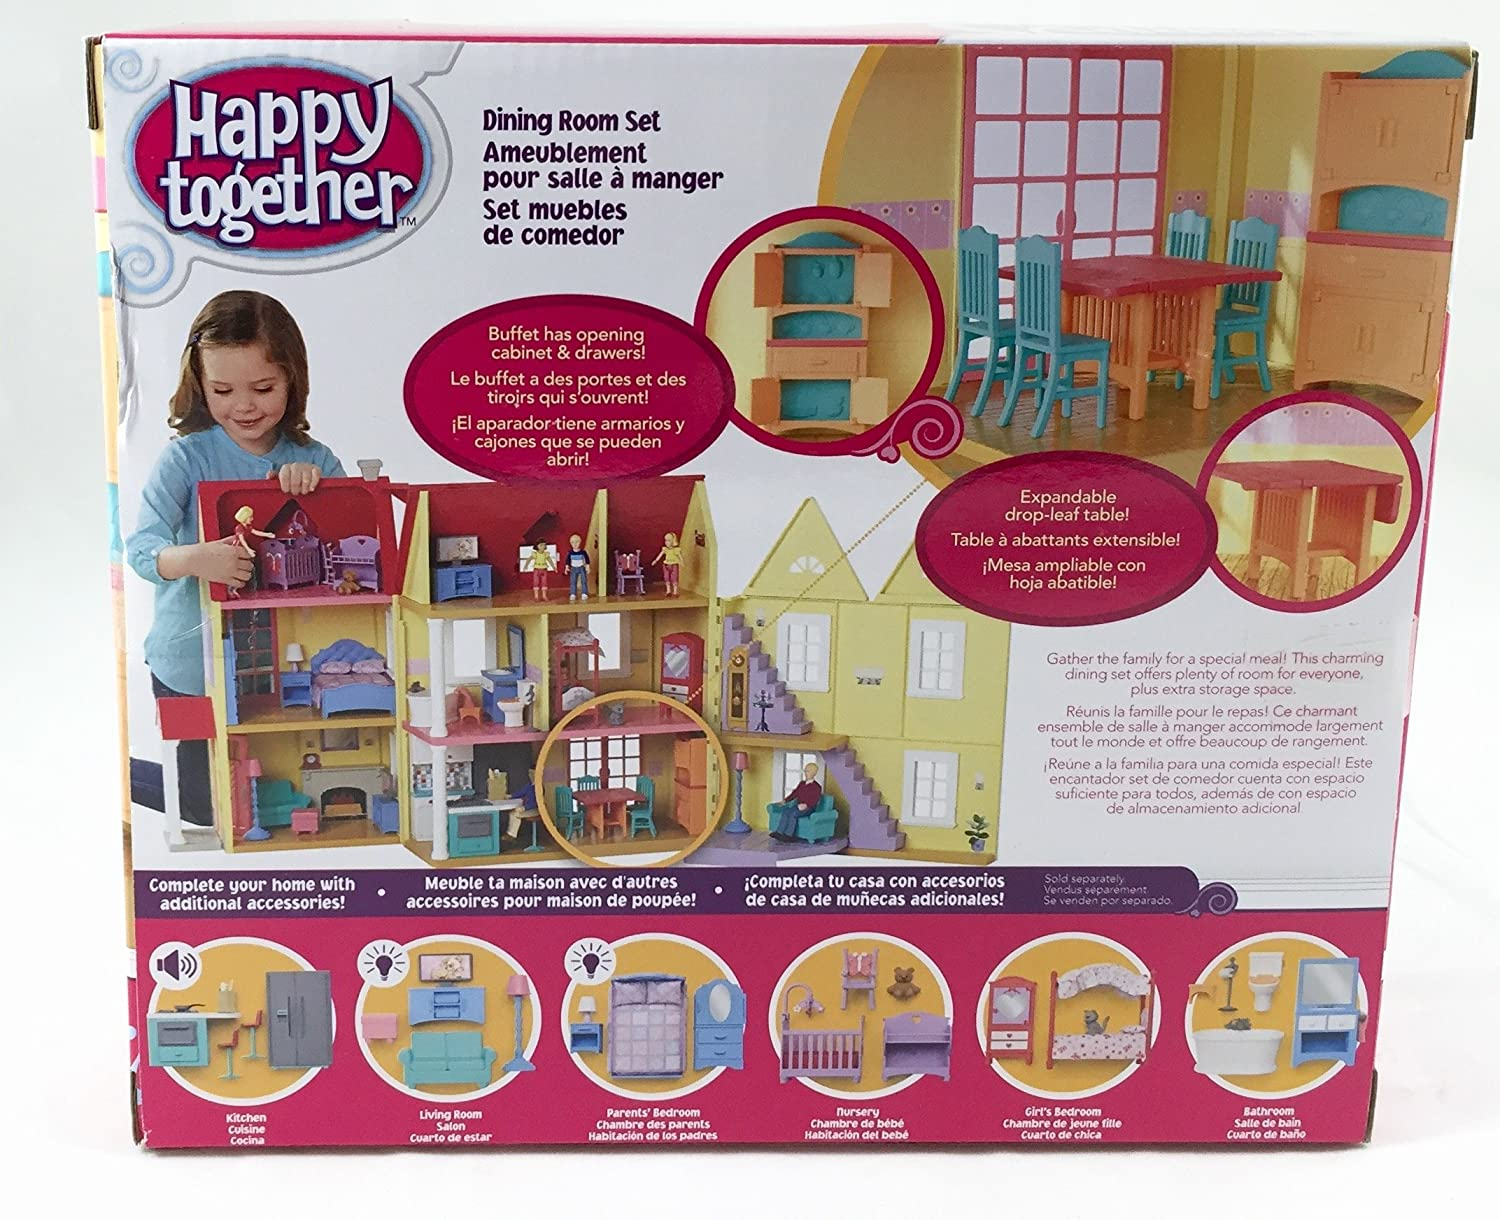 Amazon.com: Happy Together Dining Room and Family Bundle ...